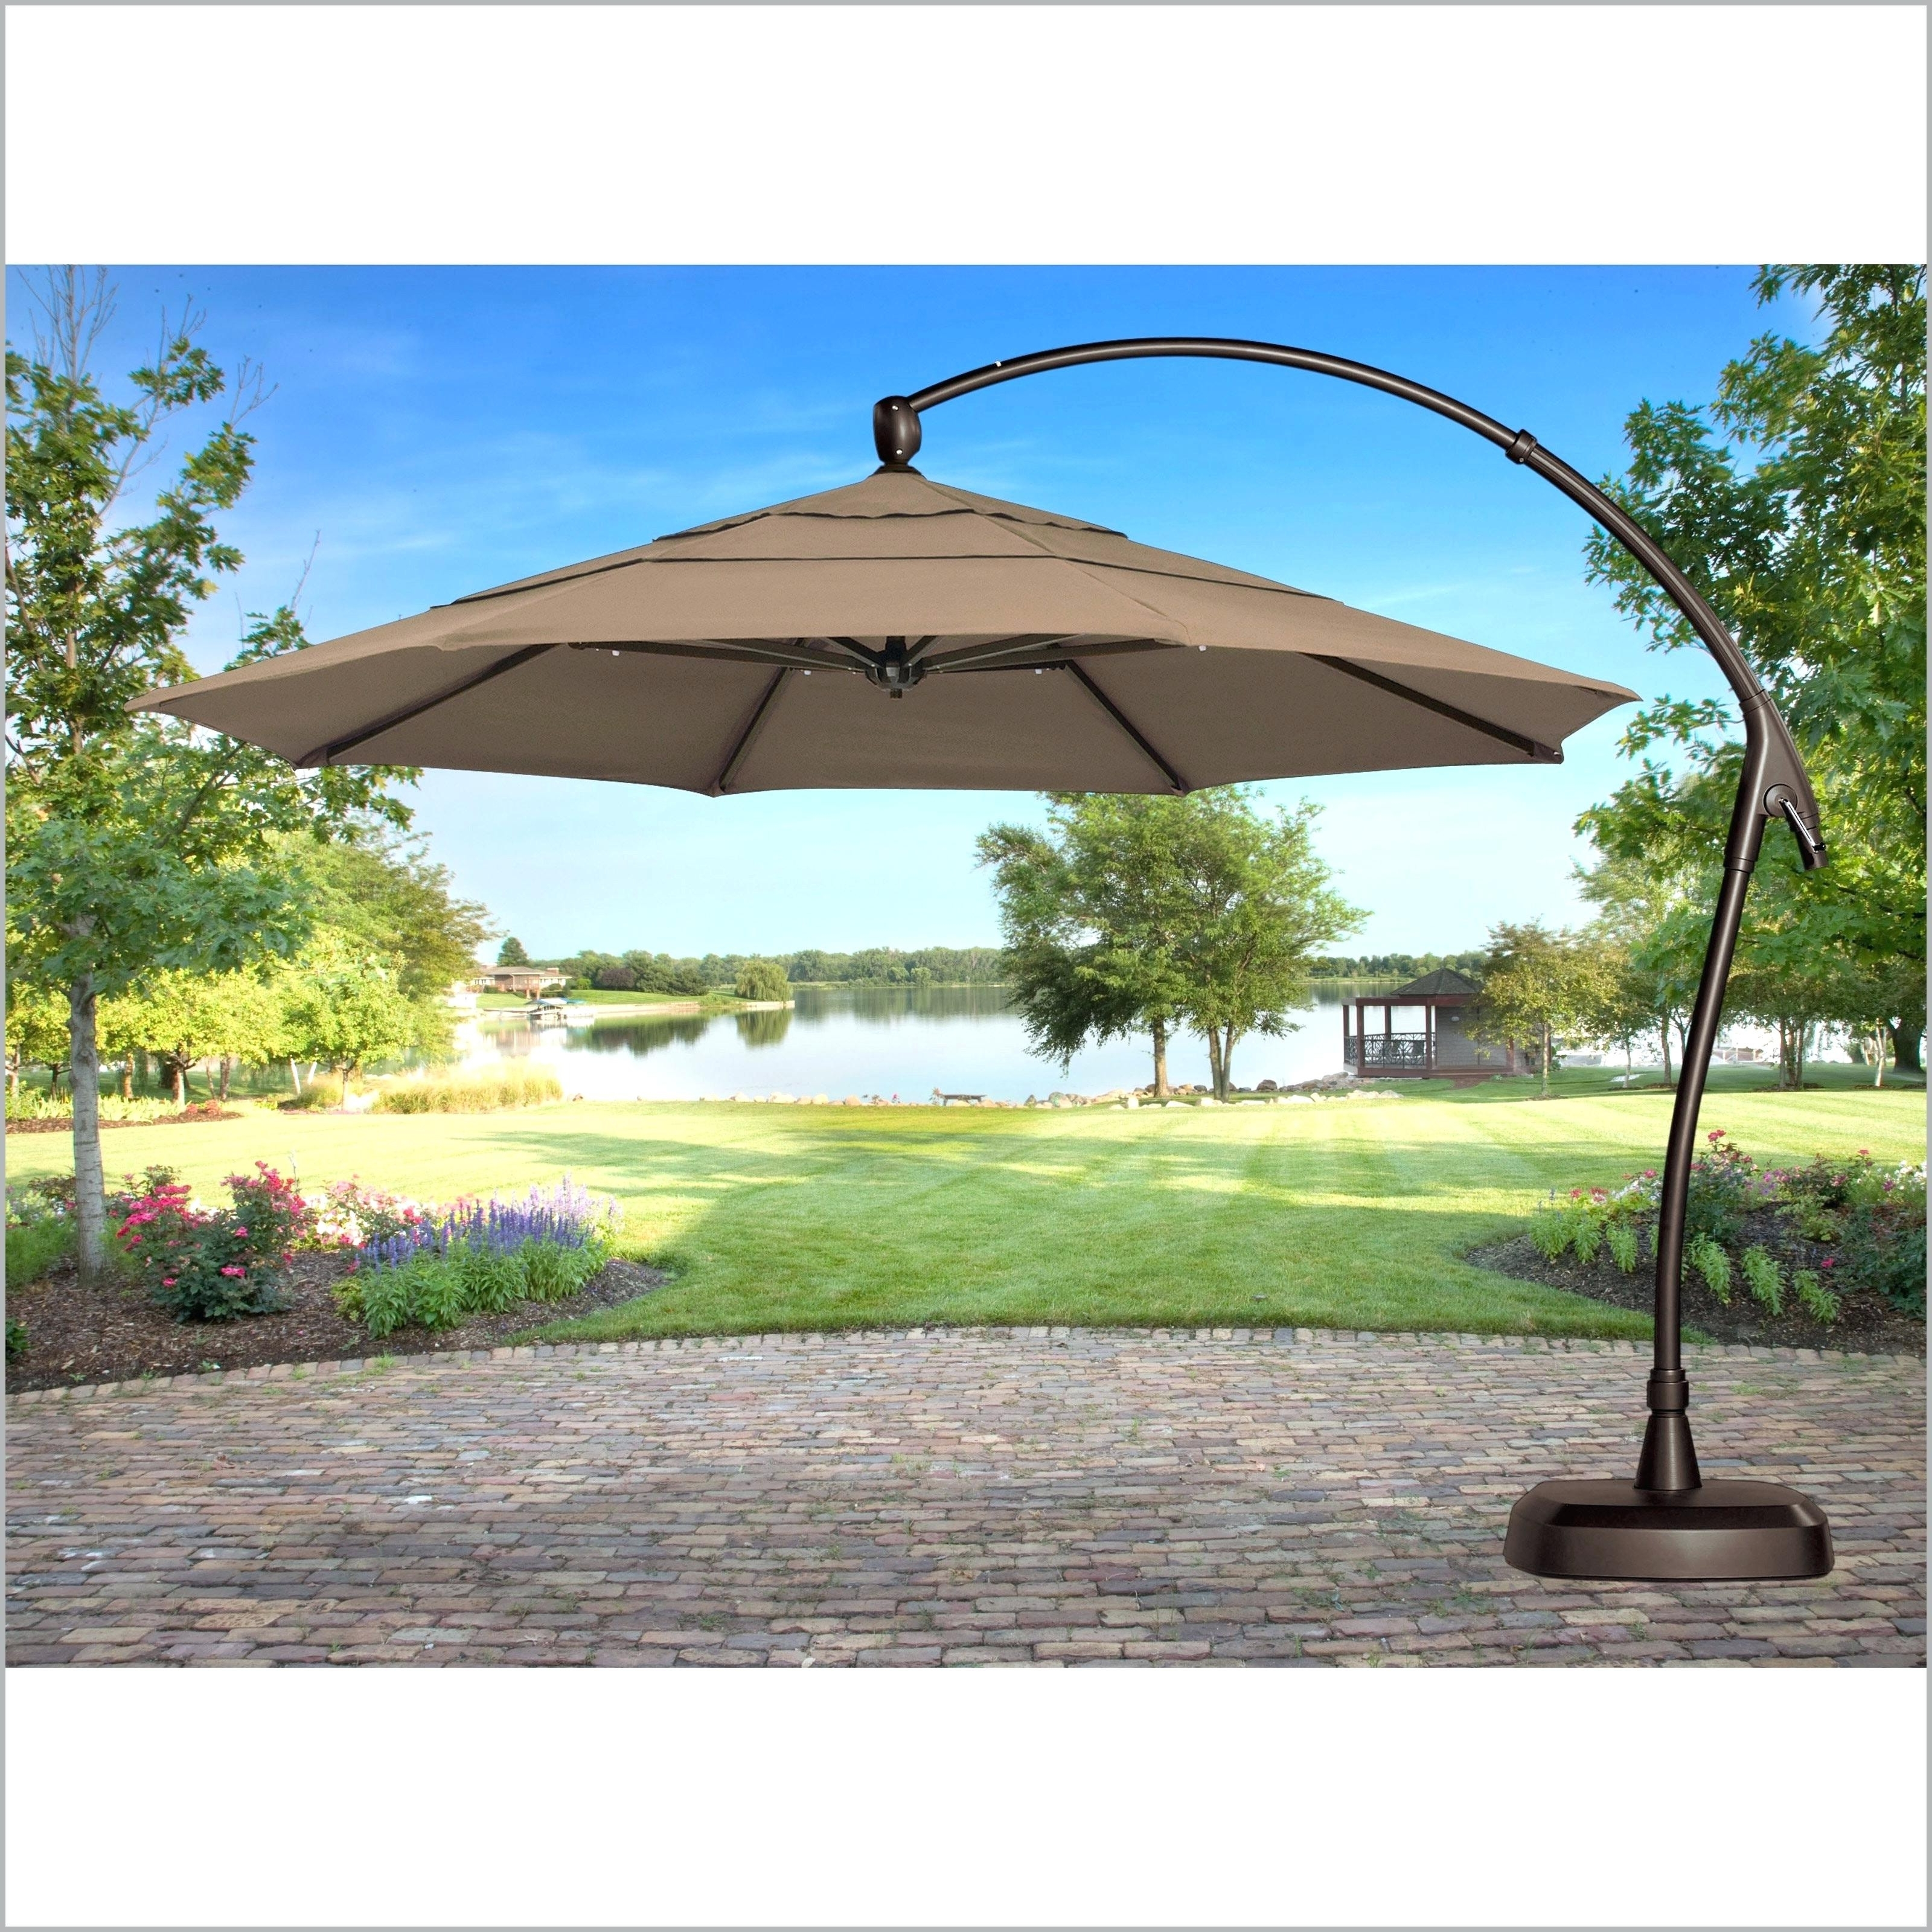 Lowes Umbrella Base Patio Umbrellas With Lights Table Pics – Mrze In Recent Lowes Offset Patio Umbrellas (View 16 of 20)